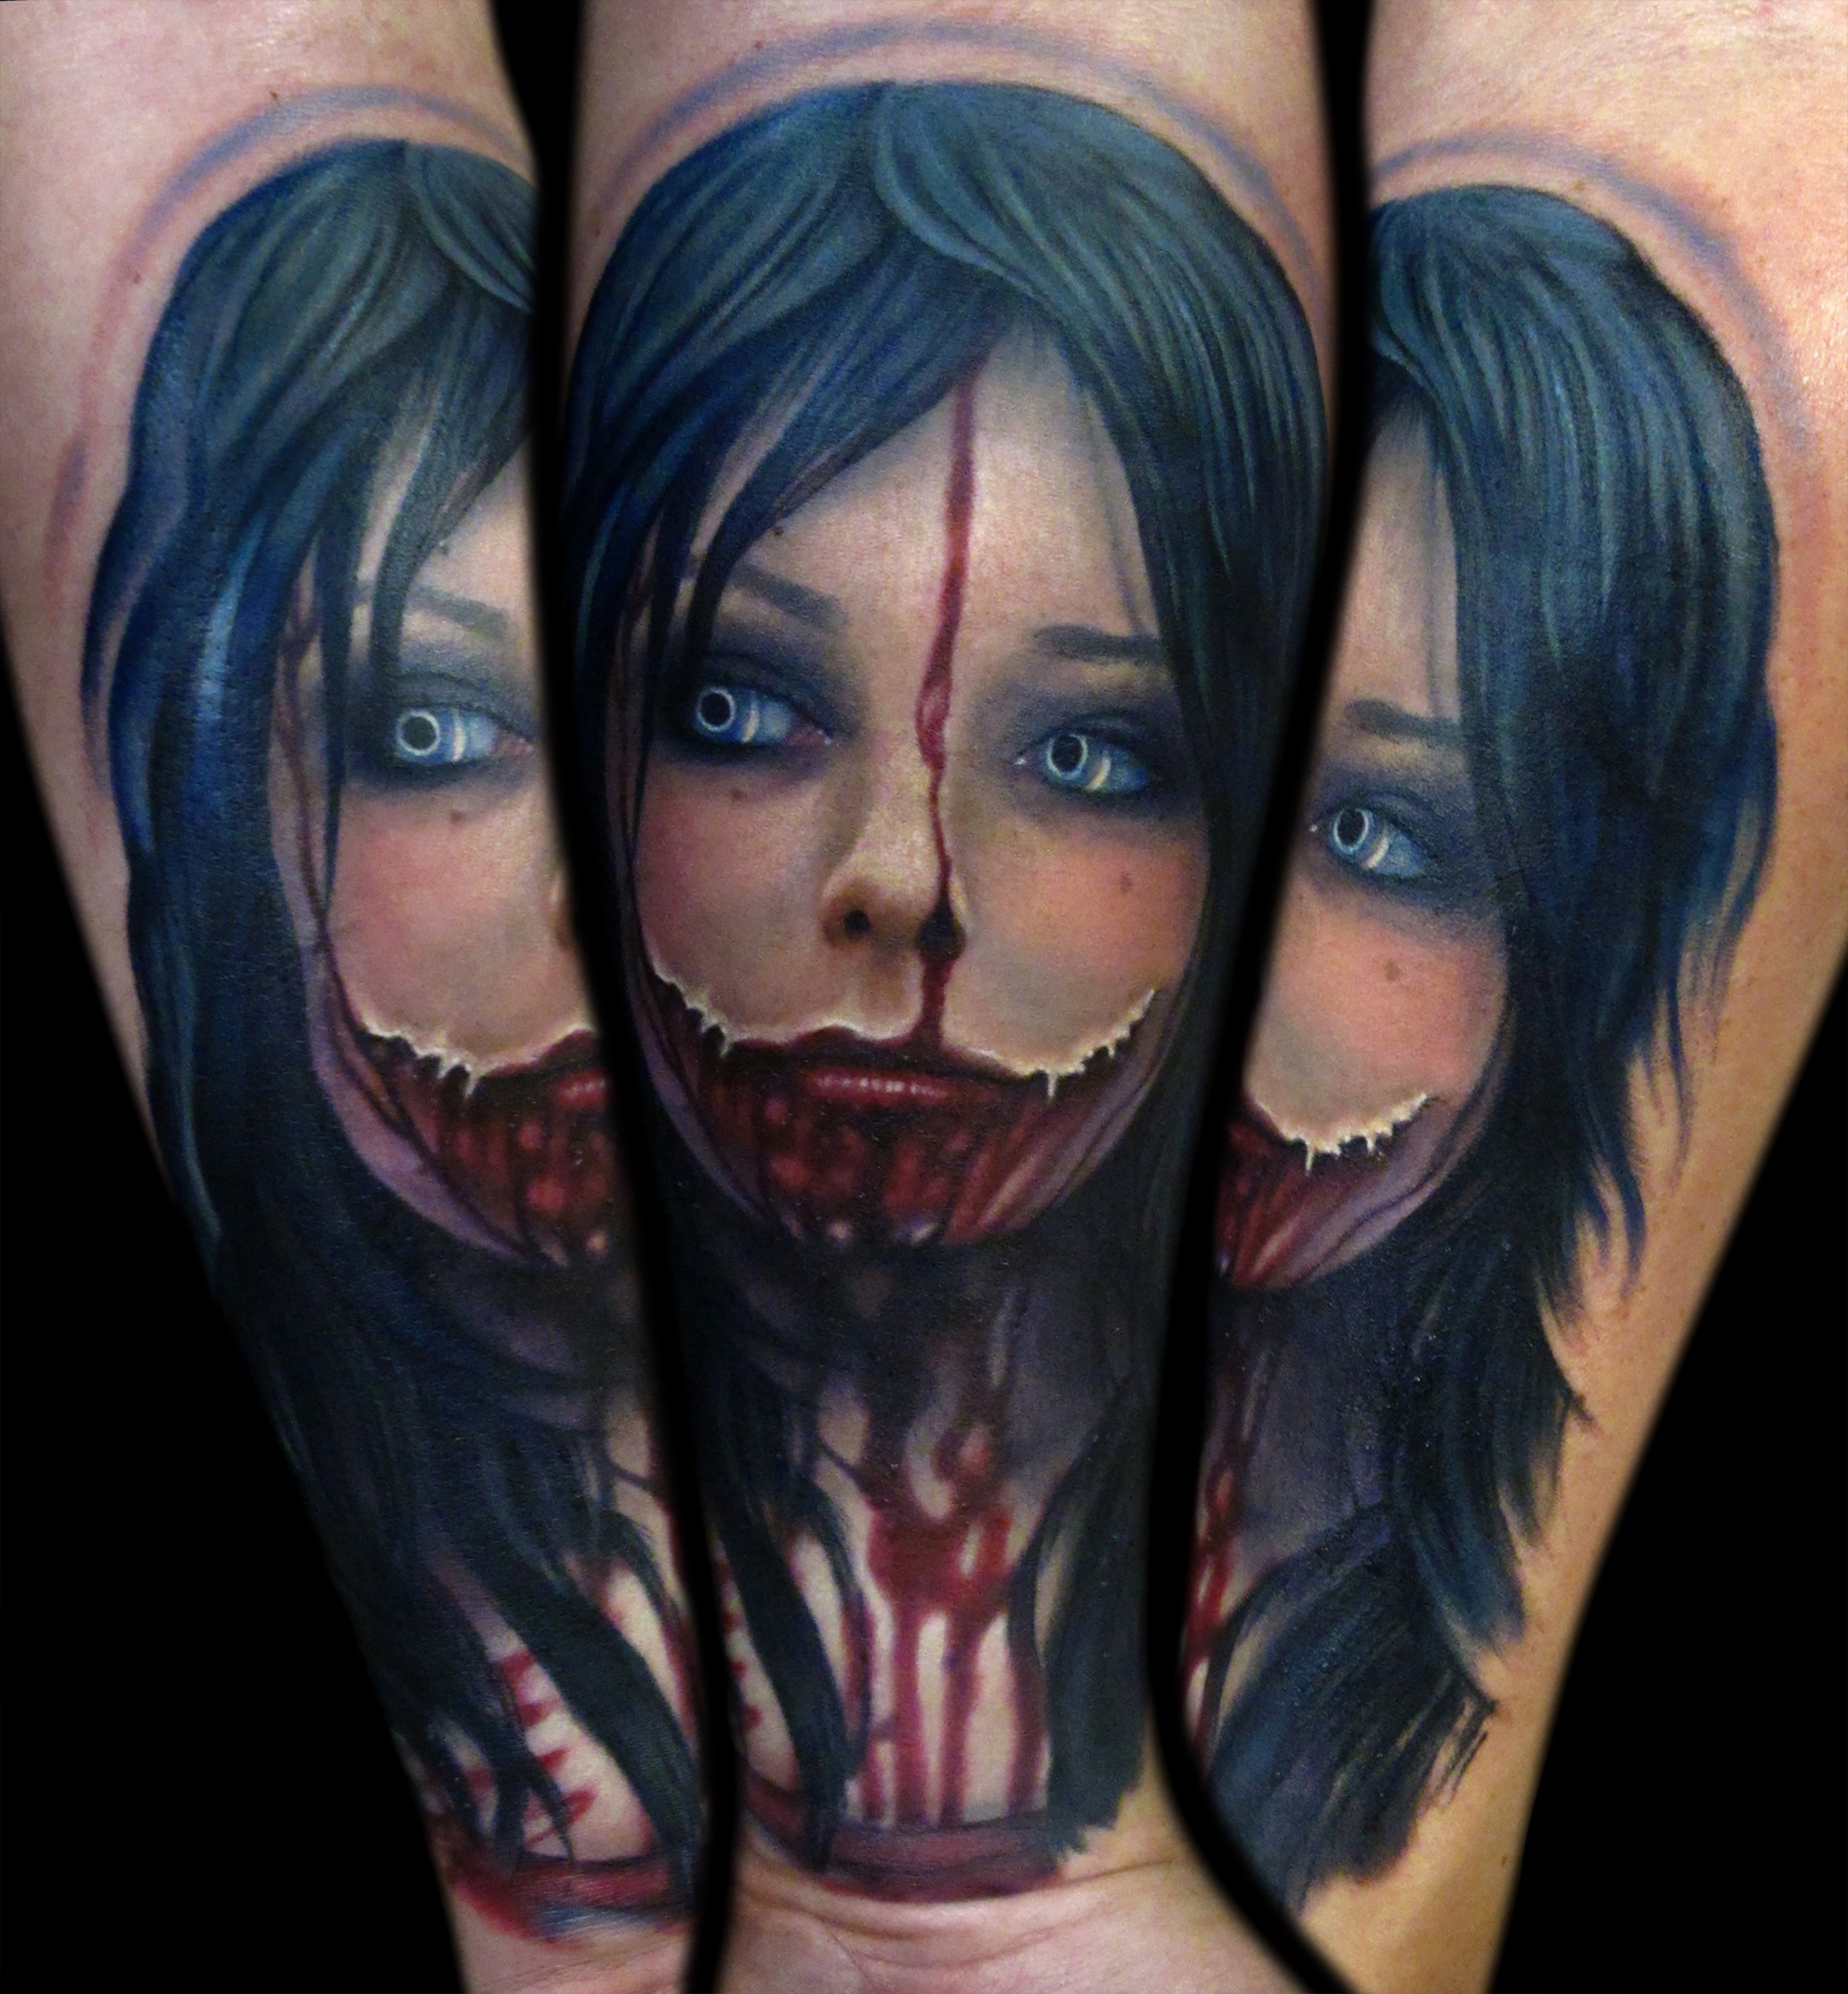 Liz Cook Tattoo Zombie Color Portrait Realistic Blue Hair Rebel Muse Dallas Texas 300res.jpg